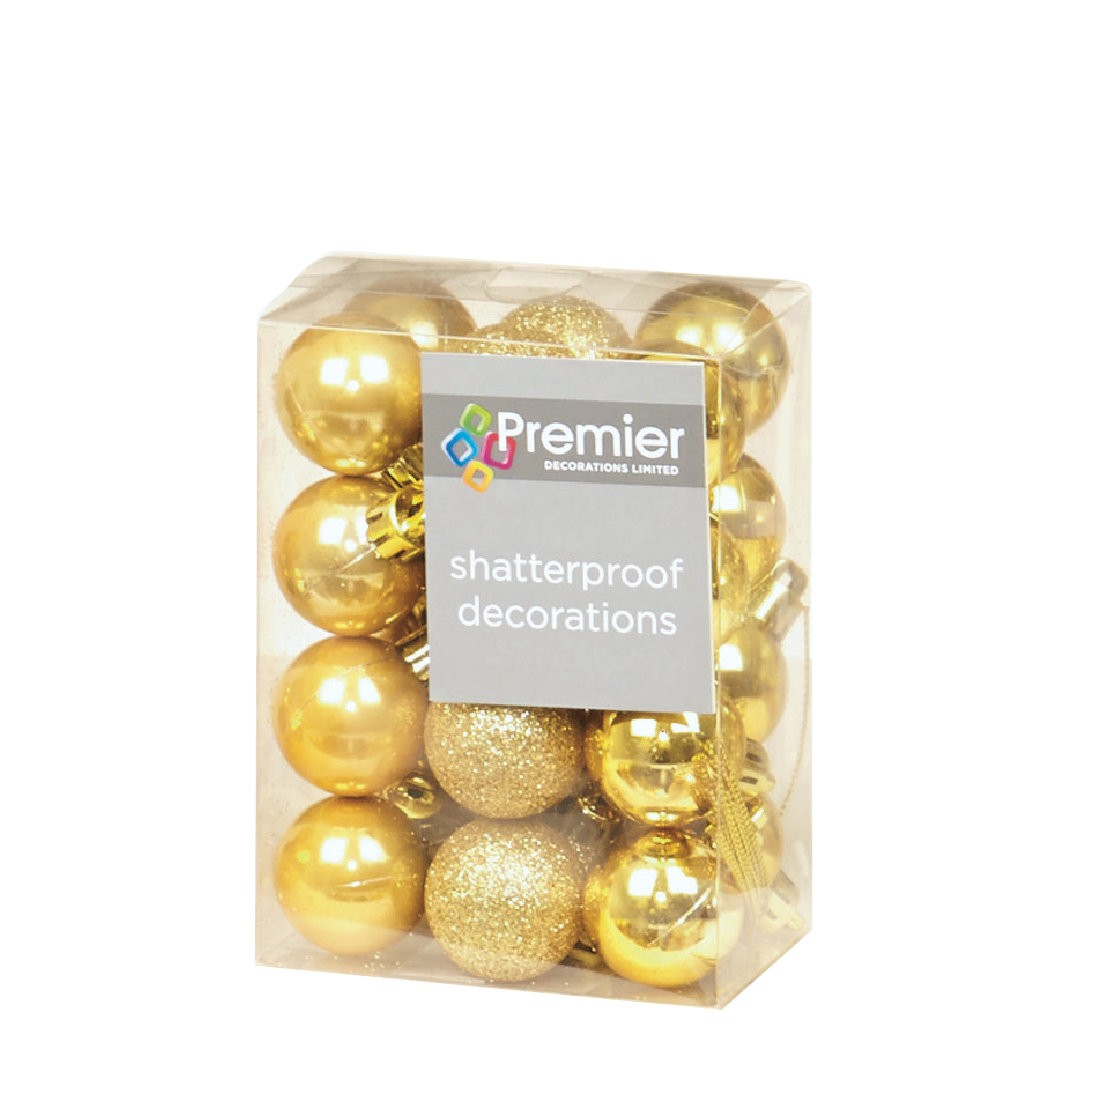 24 Gold Christmas Tree Baubles Shatterproof